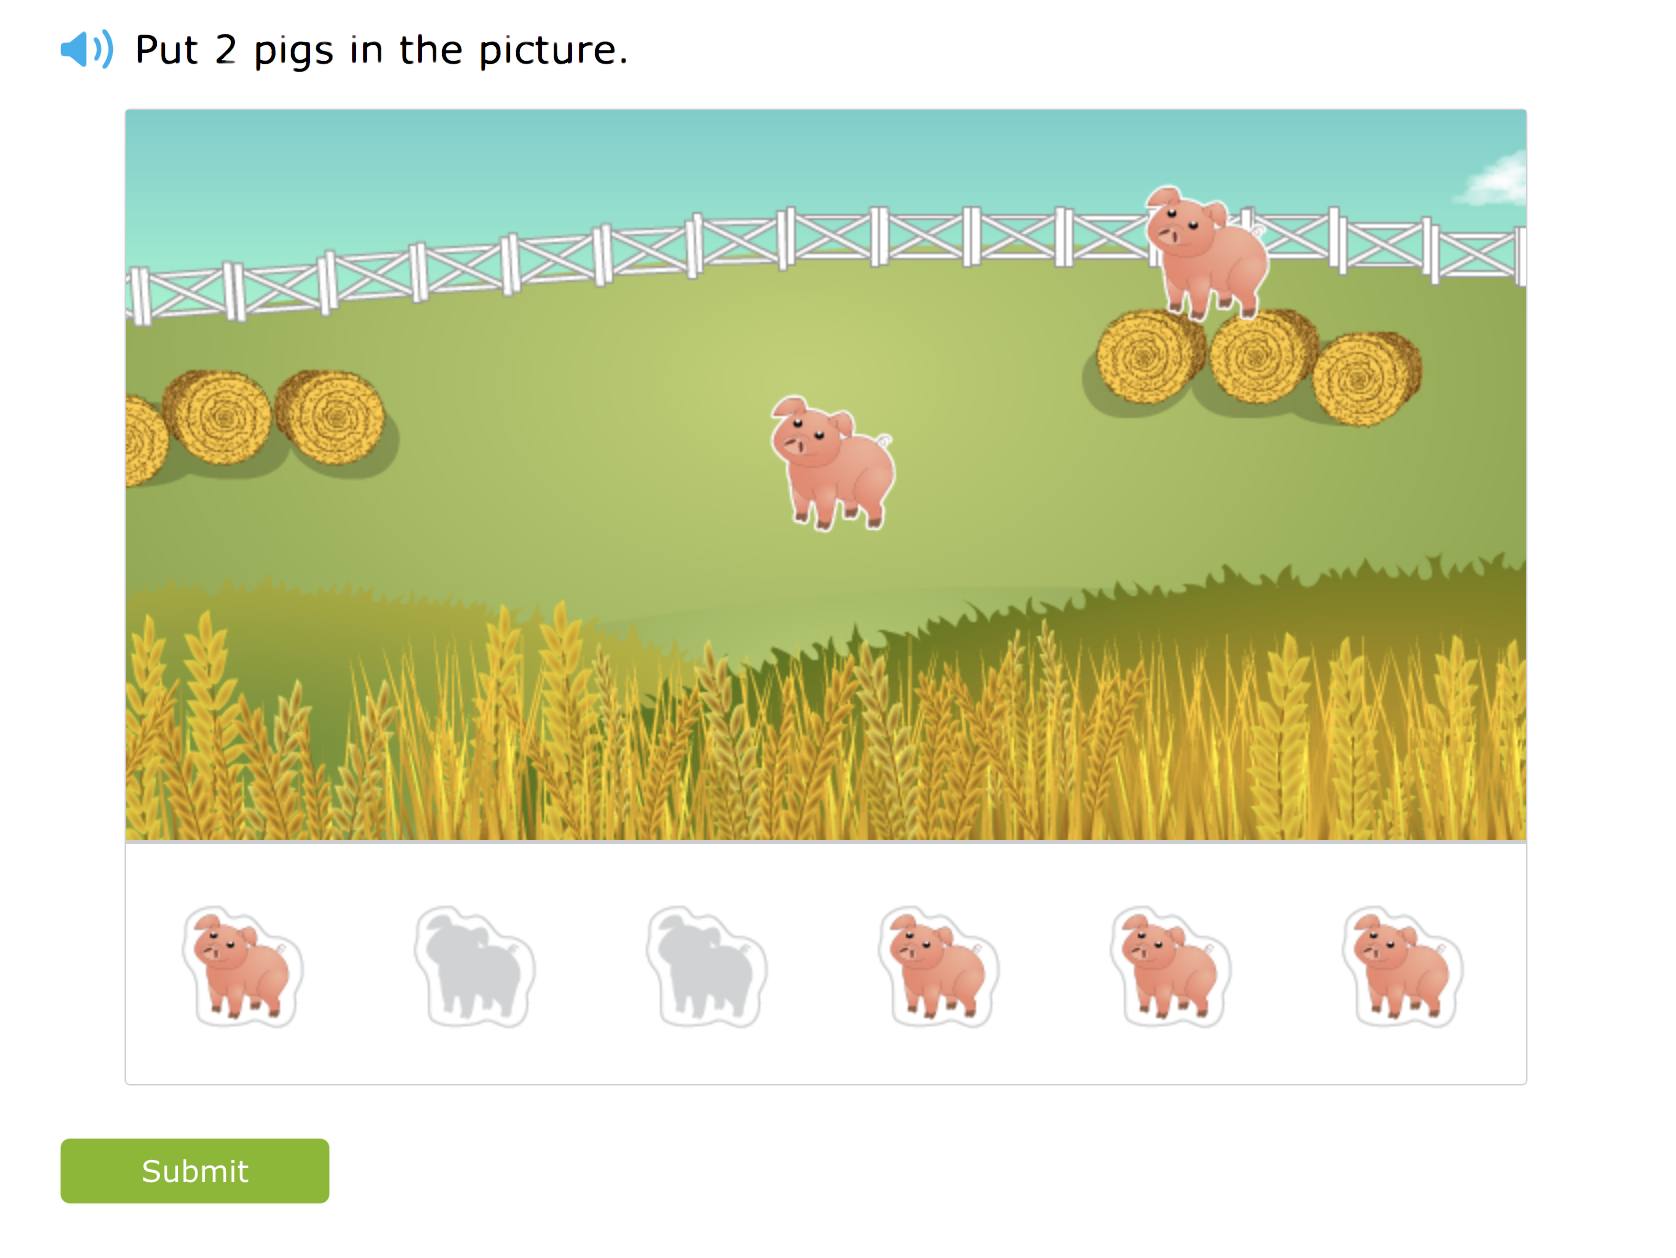 A screenshot from the redesigned skill that asks students to count by placing stickers onto a background